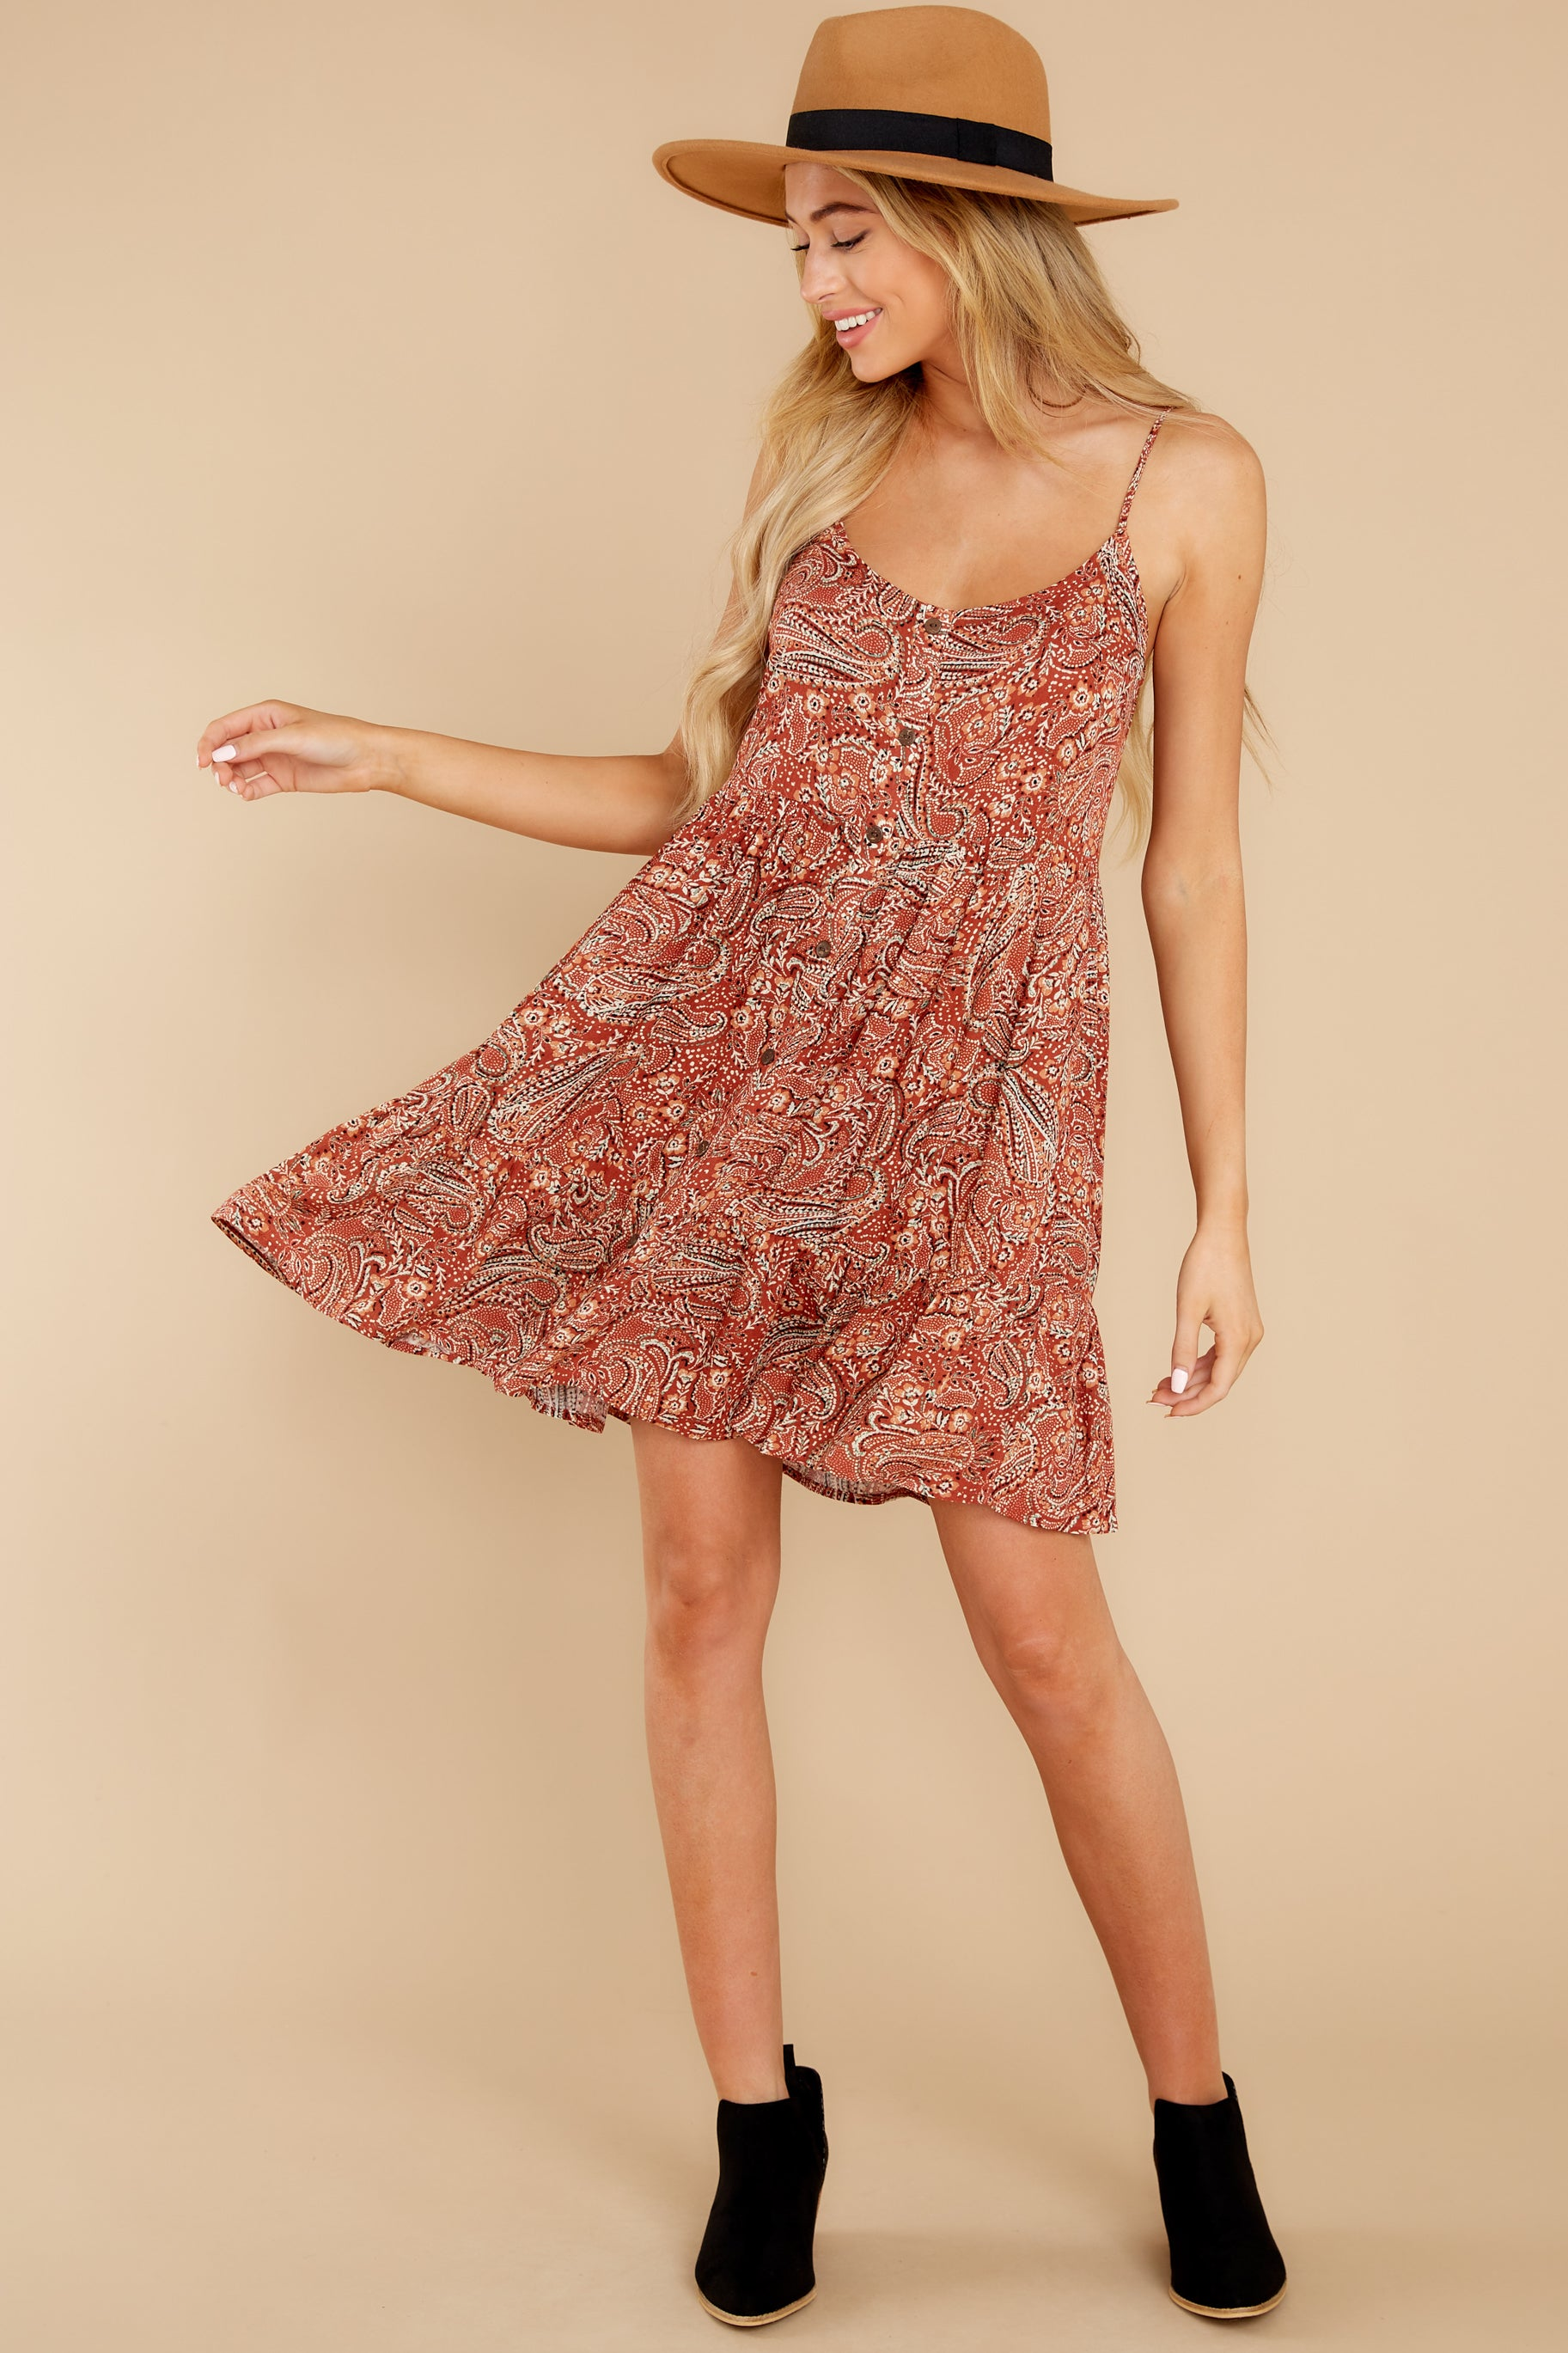 3 On Second Thought Rust Print Dress at reddress.com